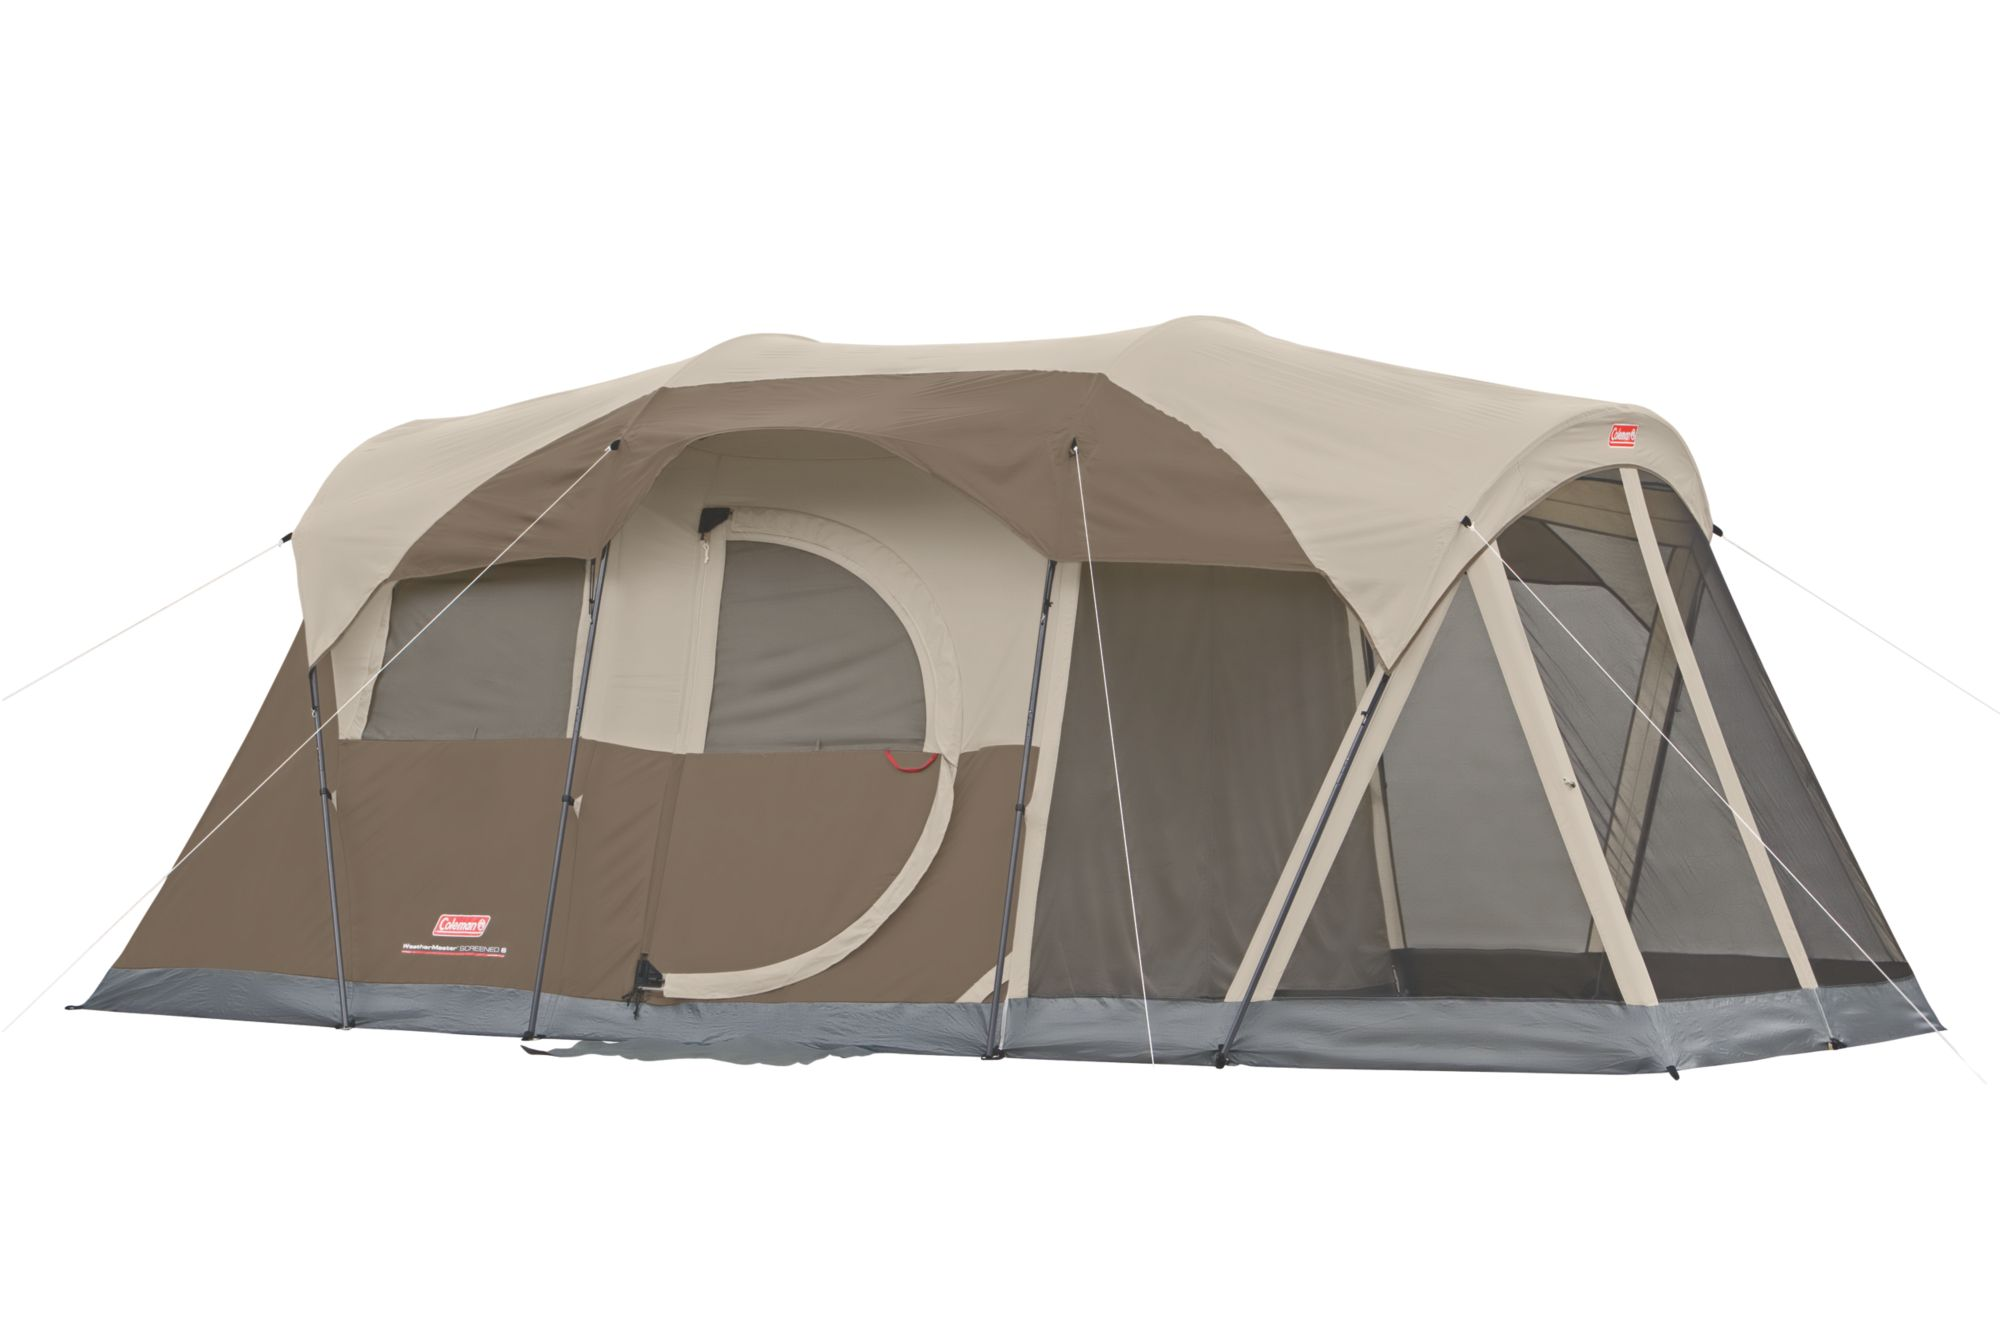 6 person tent screened tents coleman